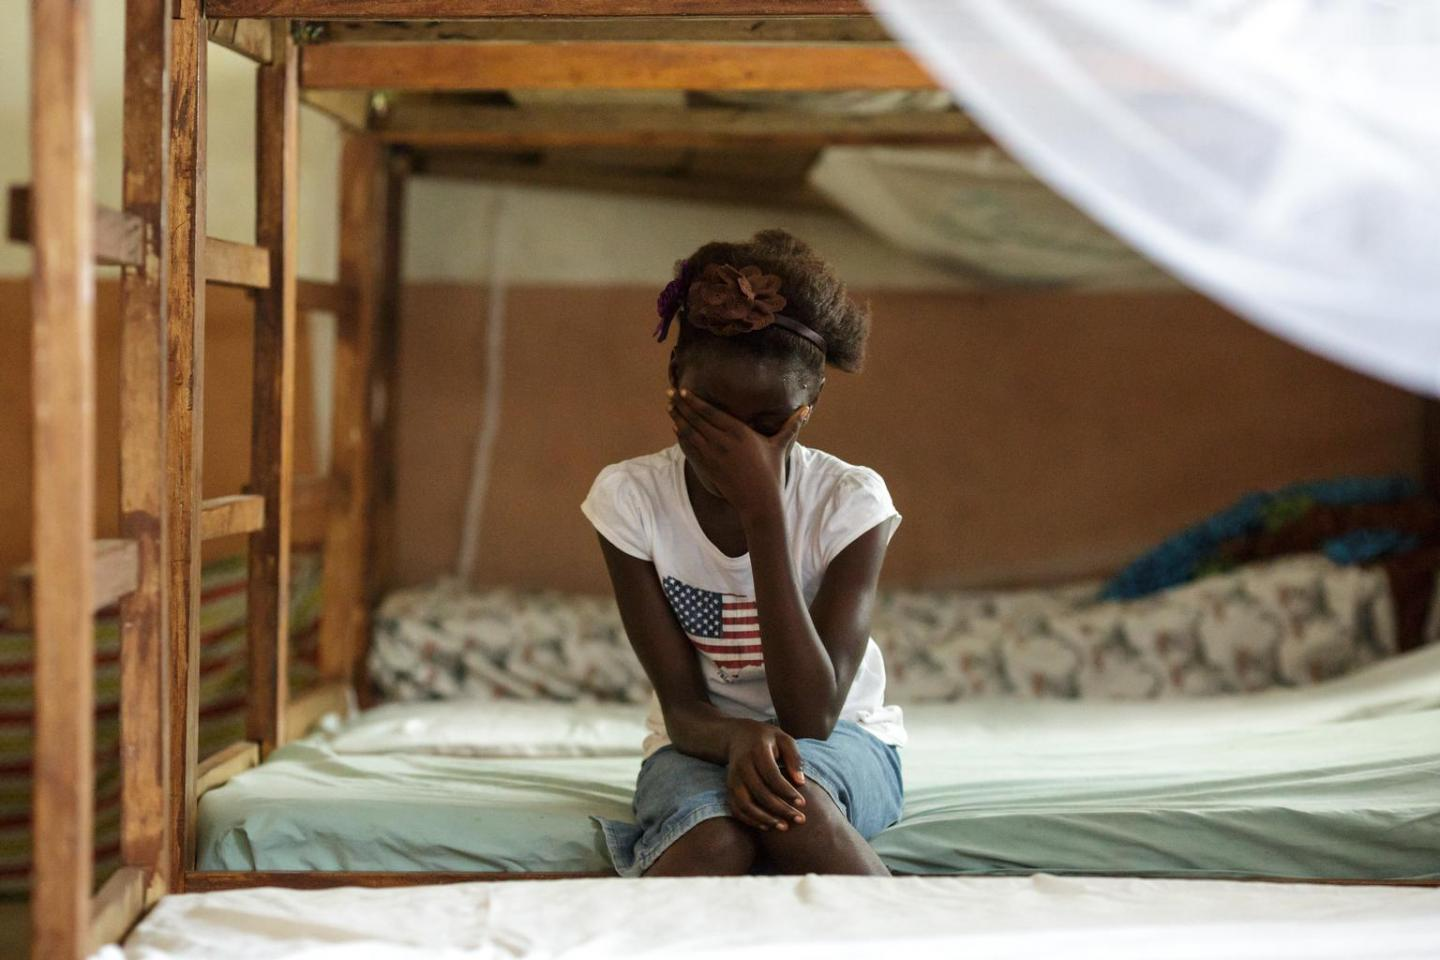 A girl sits on a bed with her head in her hand, Sierra Leone